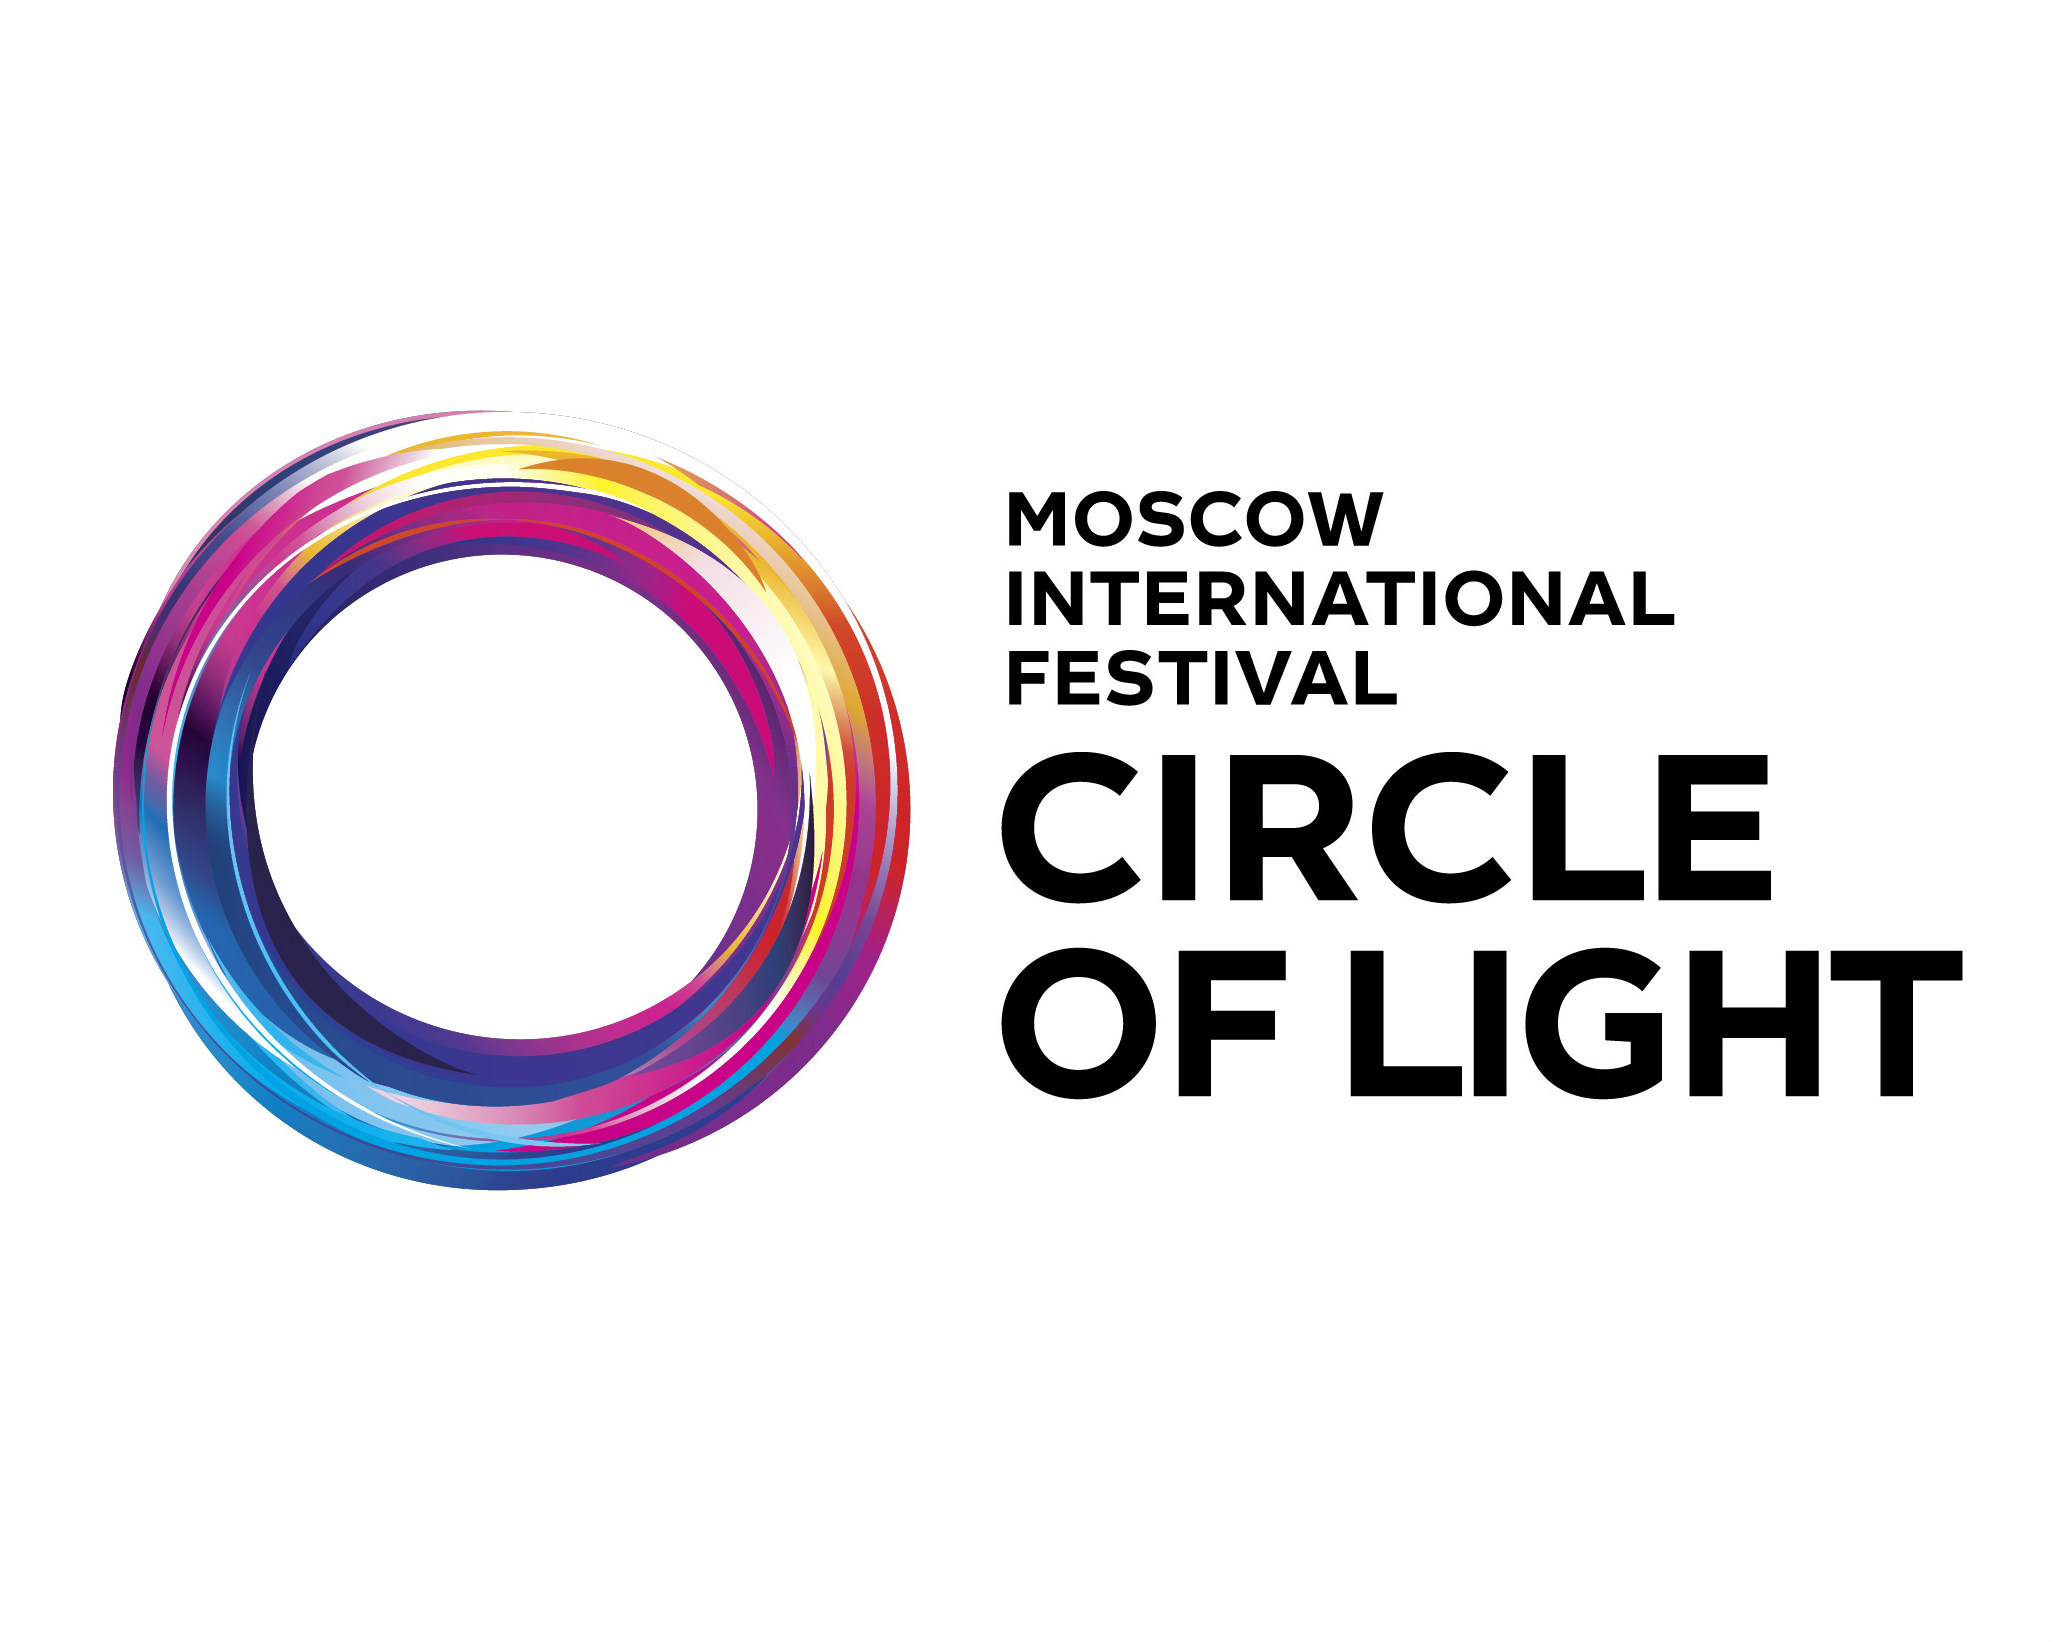 Moscow International Festival | Circle of Light